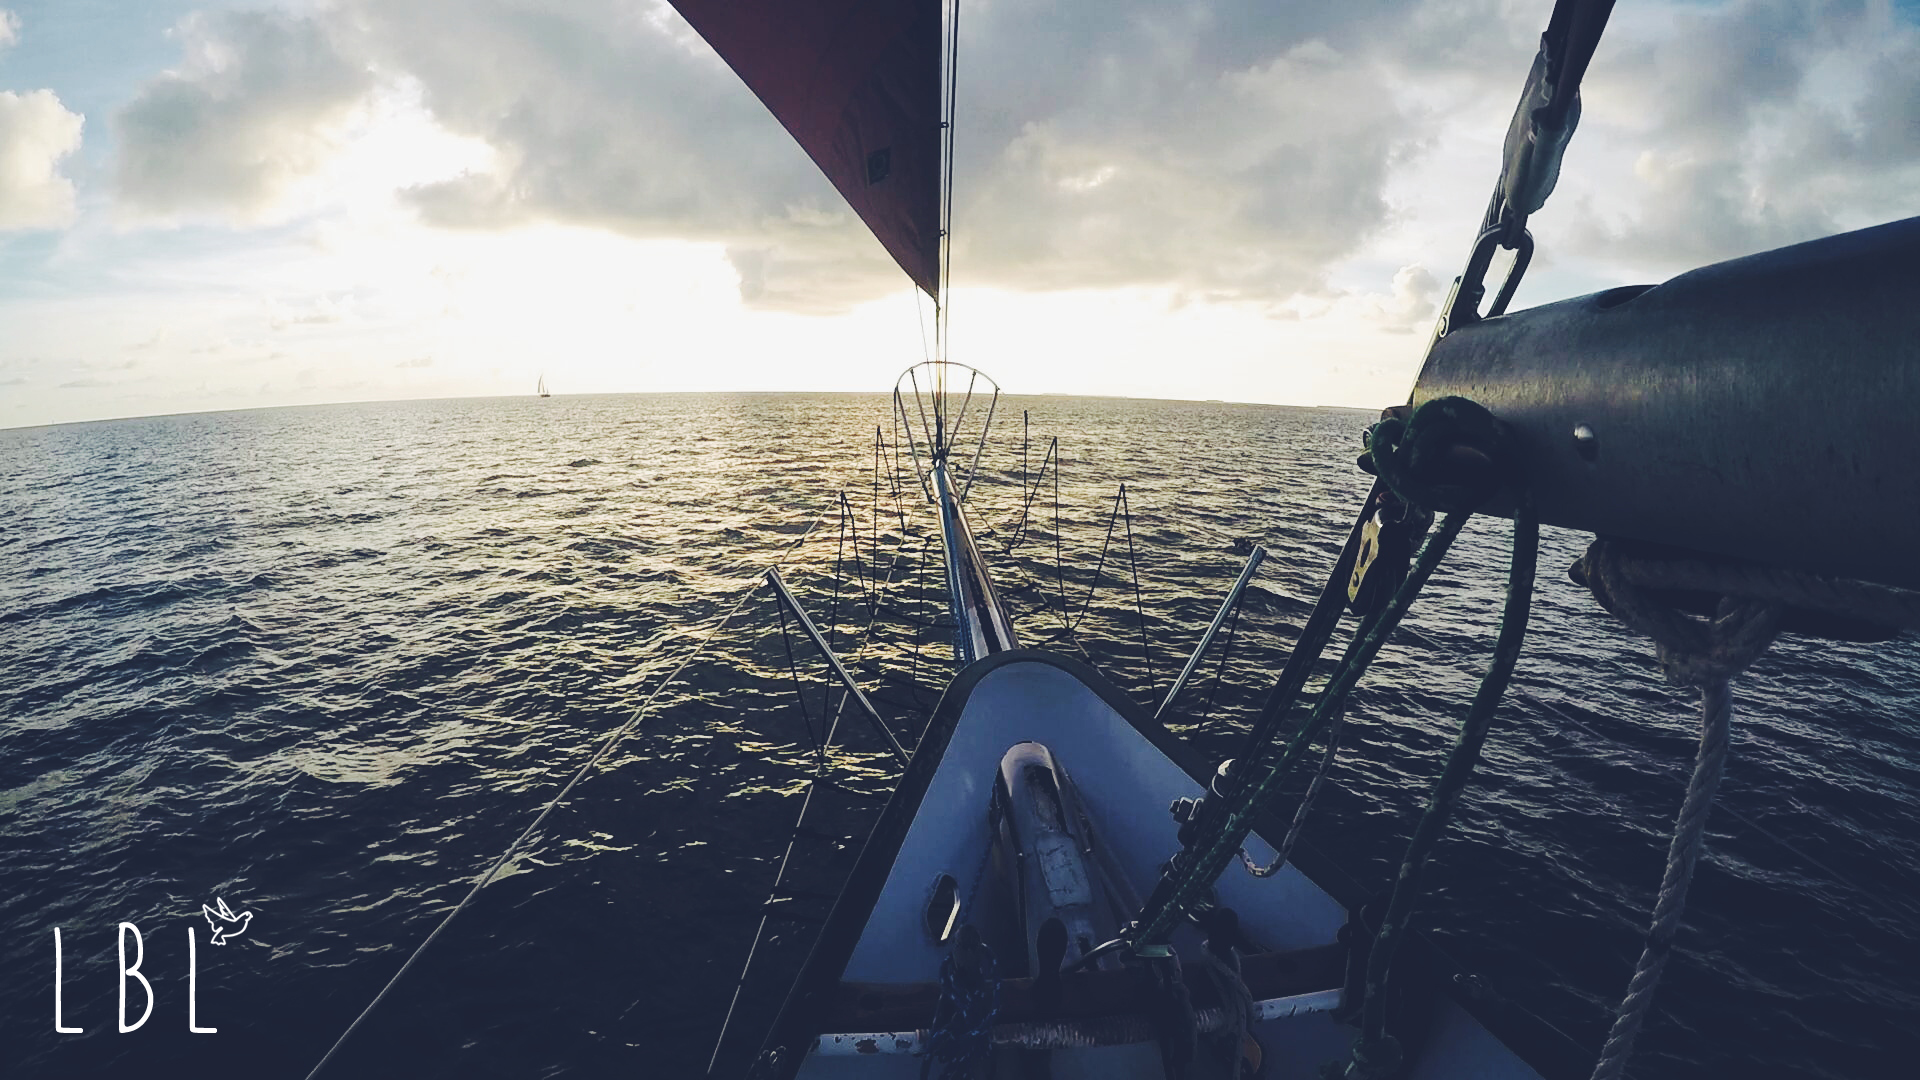 Taken on a spontaneous sunset sail during a weekend in Key West